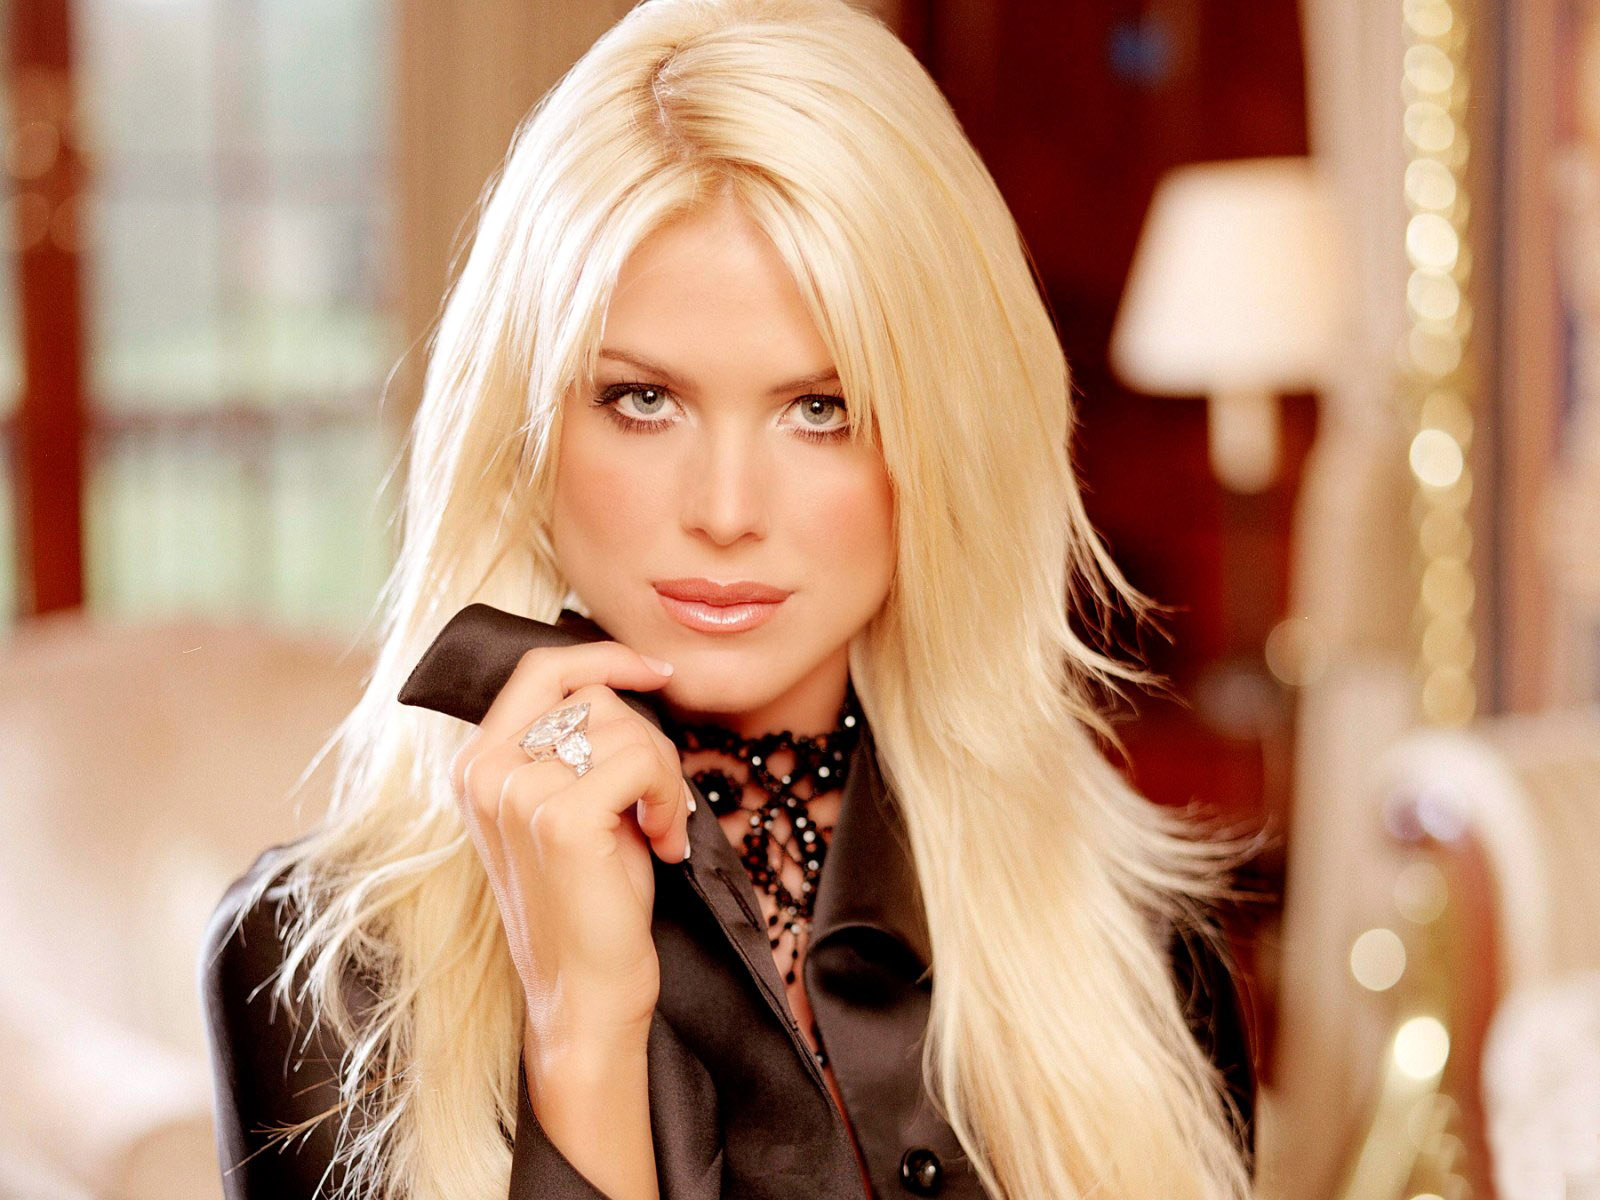 Hollywood actress wallpapers Victoria Silvstedt hd wallpapers 1600x1200